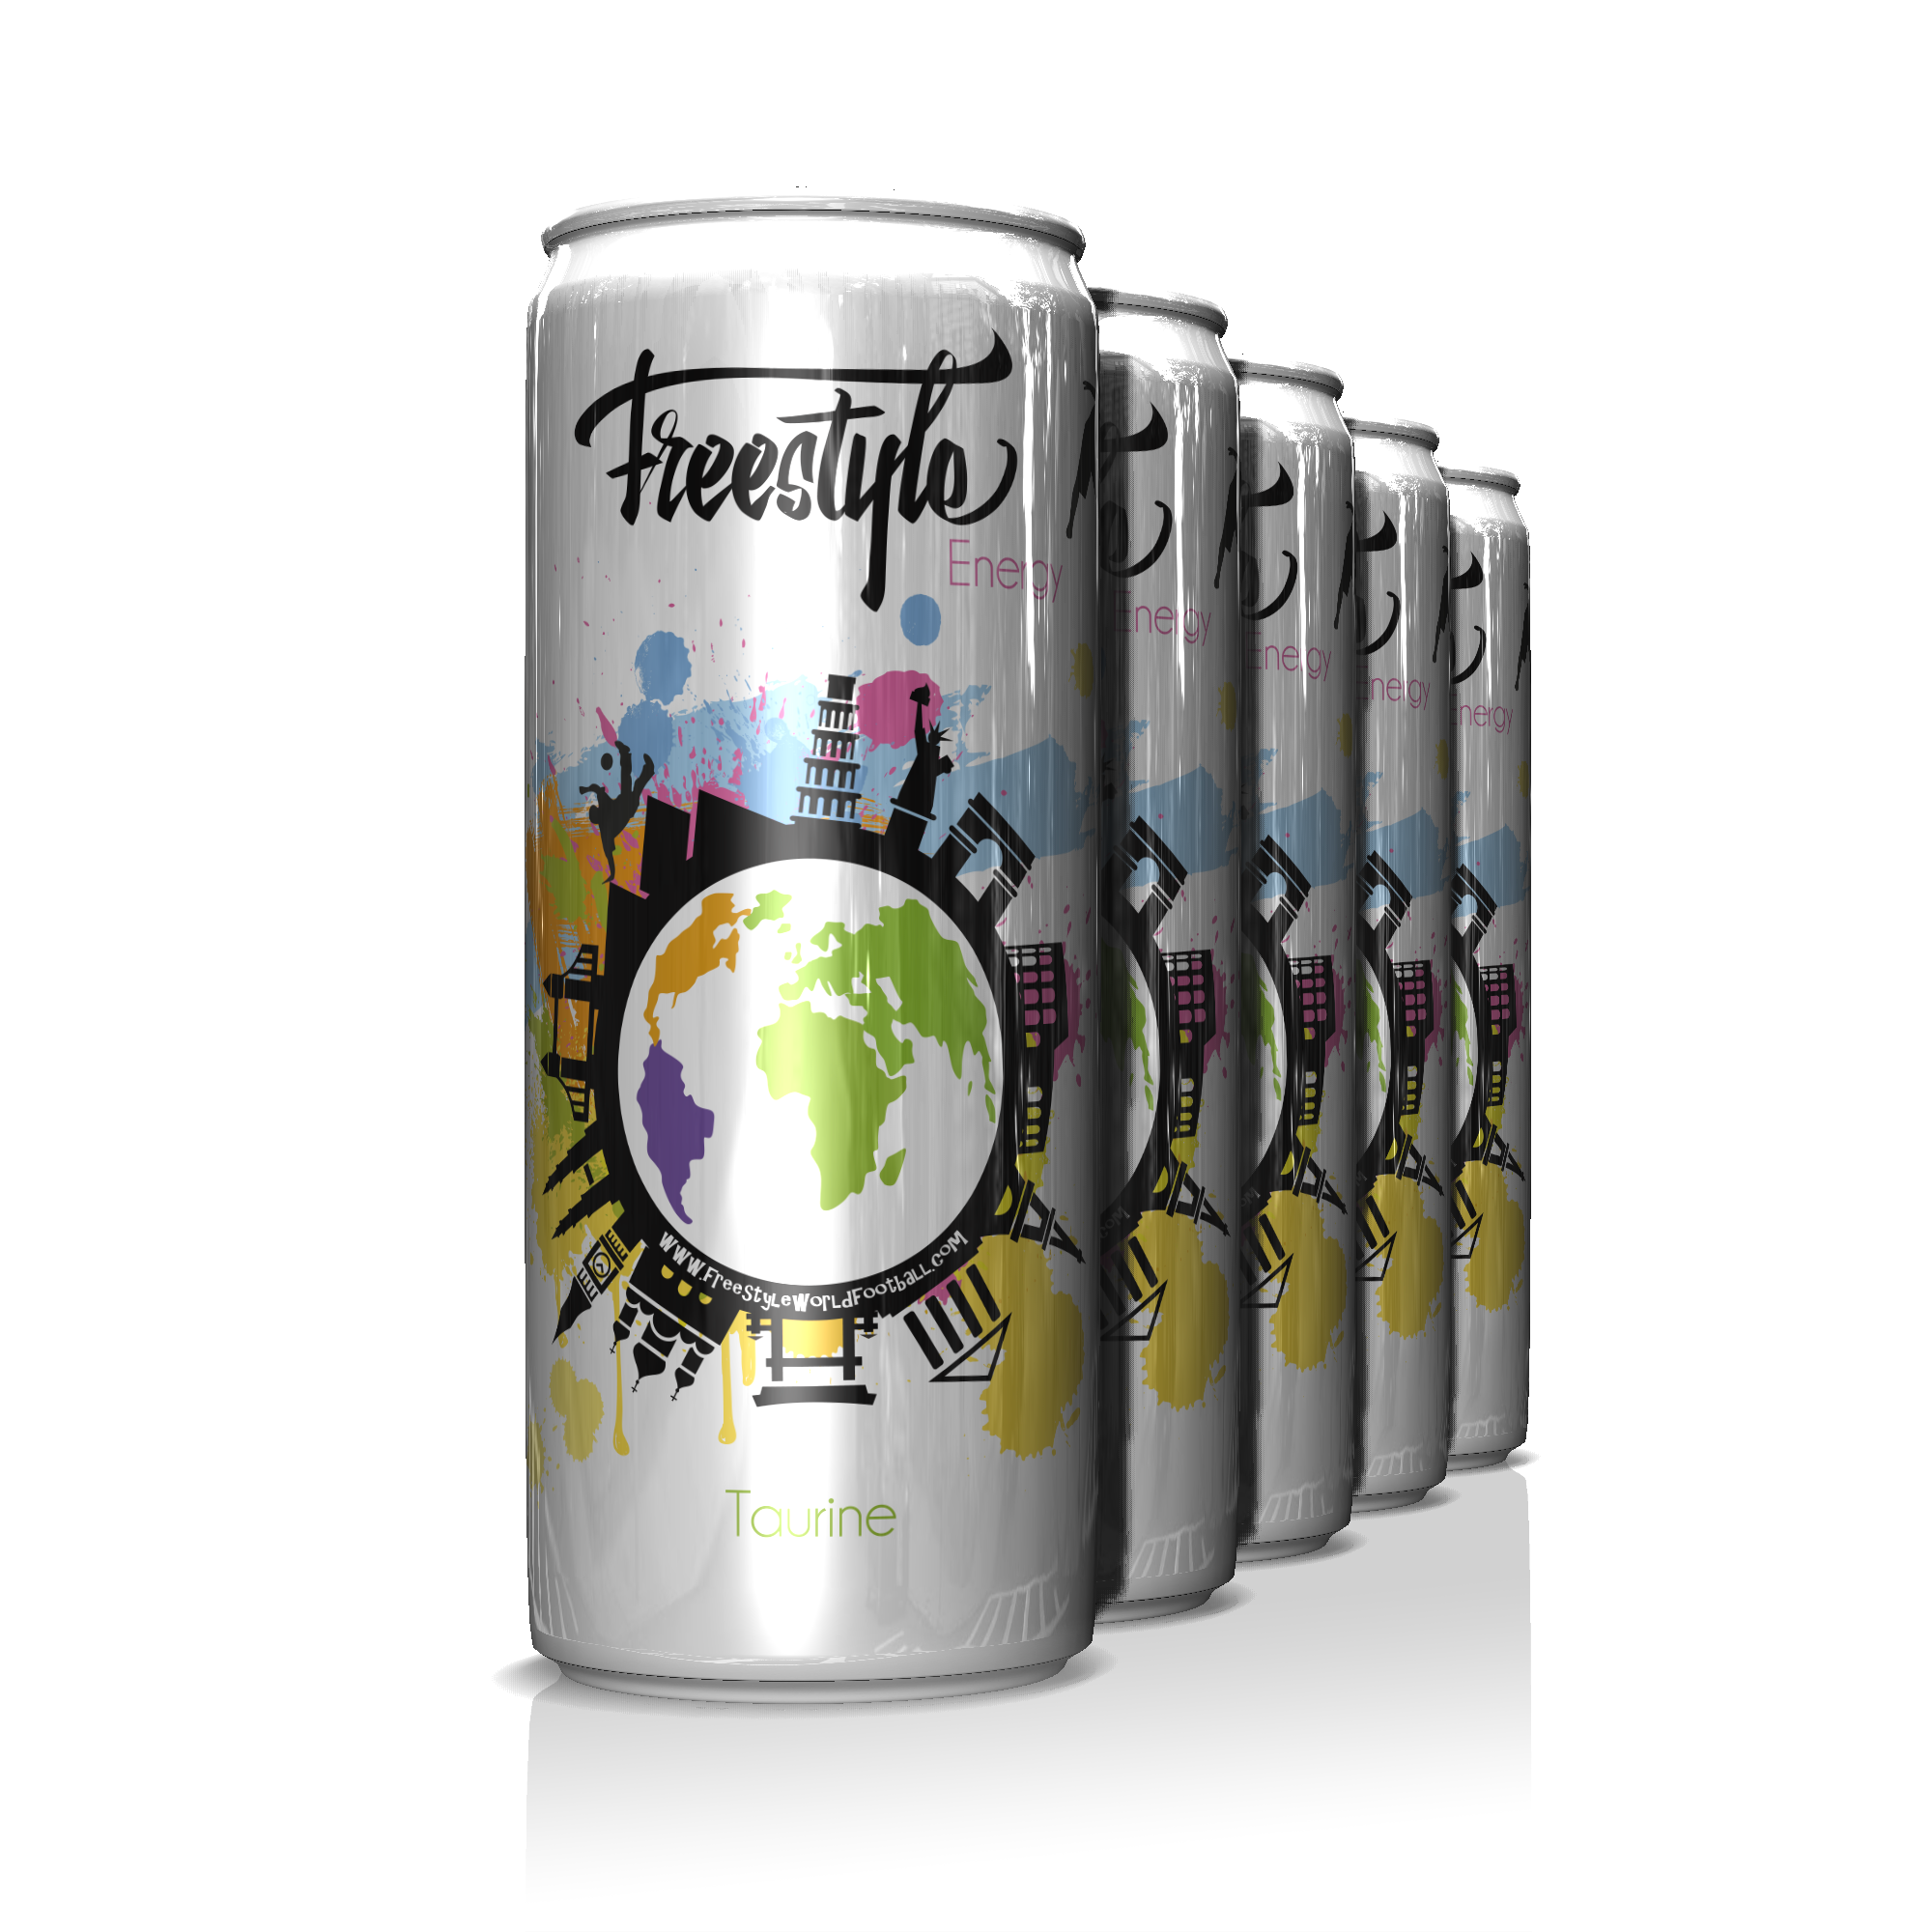 Cans of Freestyle Energy